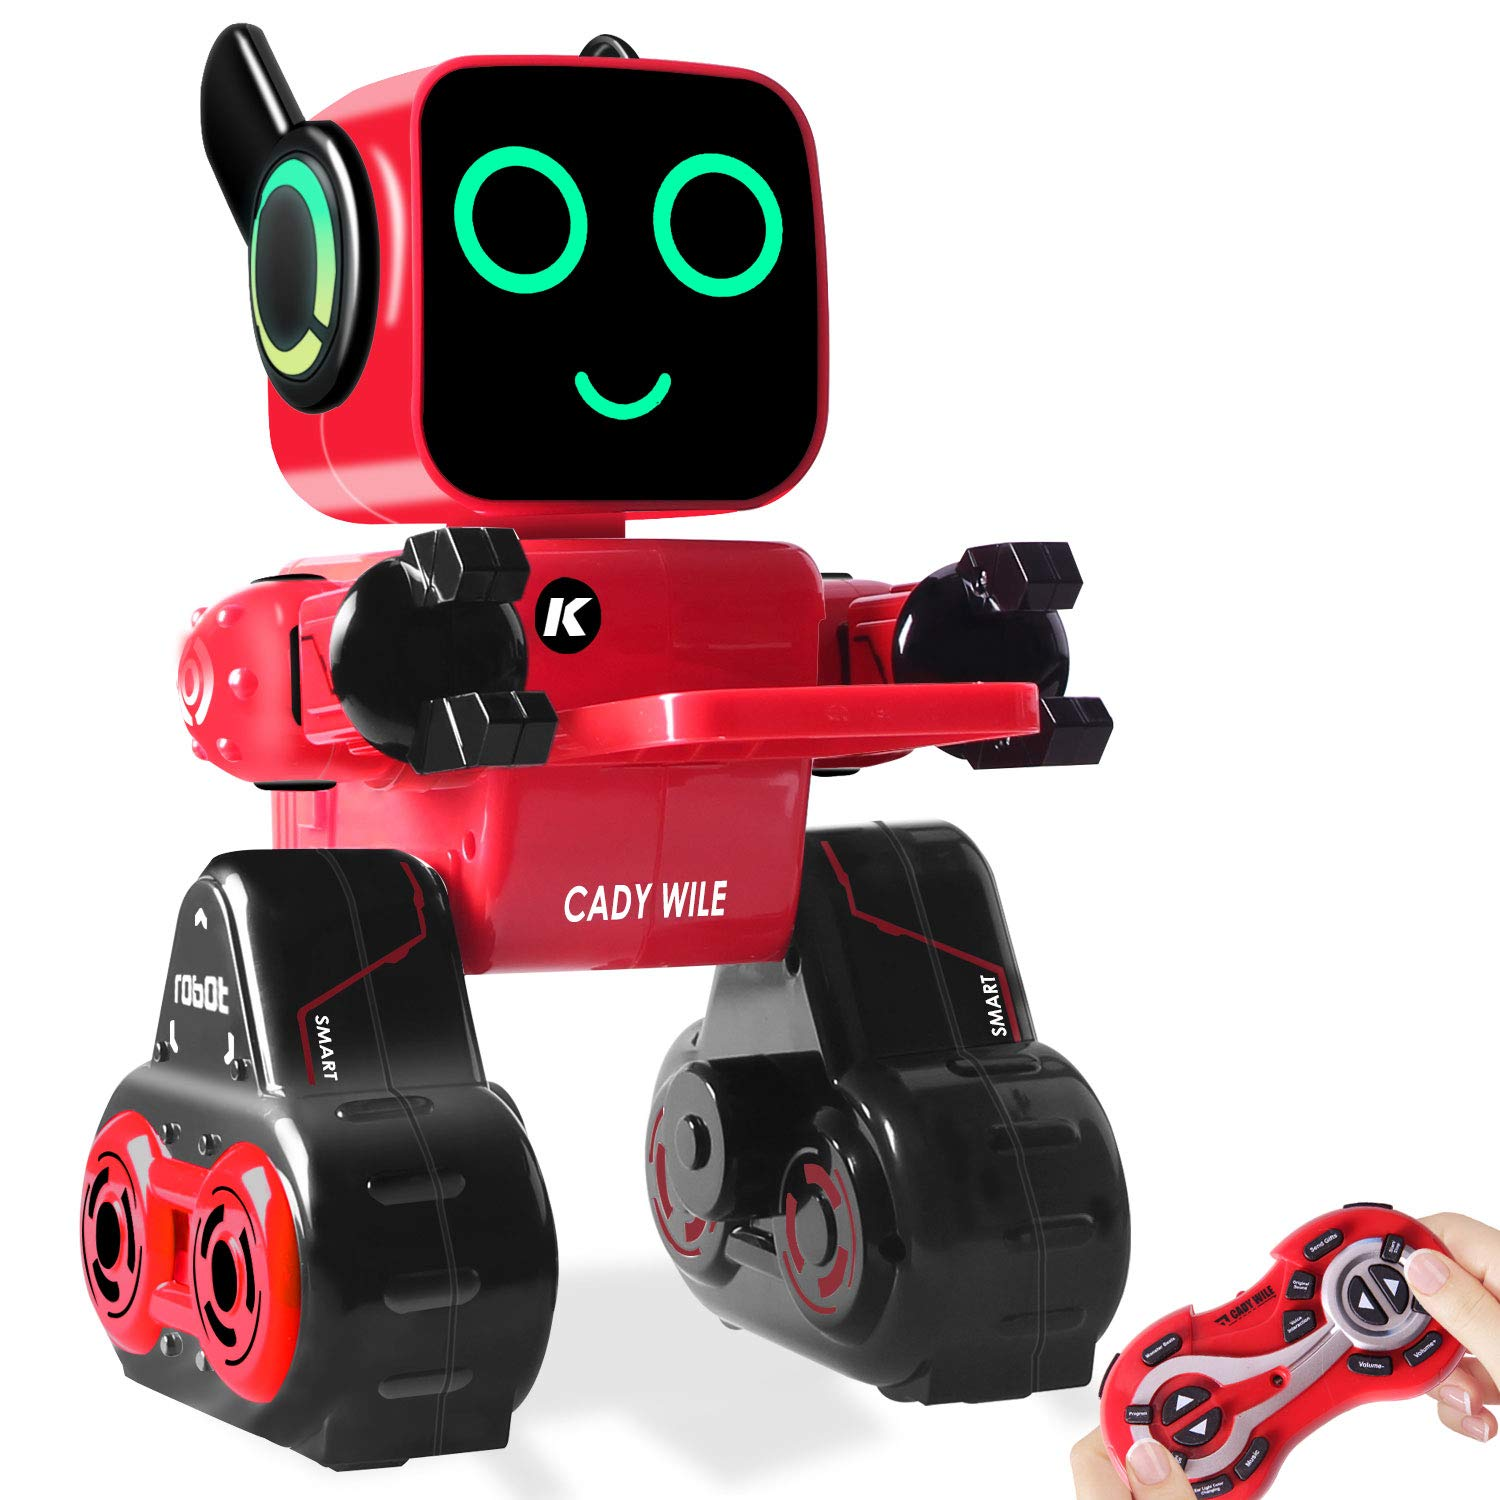 IHBUDS Programmable Remote Control Toy Robot for Kids,Touch & Sound Control, Speaks, Dance Moves, Plays Music. Built-in Coin Bank.Rechargeable RC Robot Kit for Boys, Girls All Ages-Red/Black by IHBUDS (Image #1)